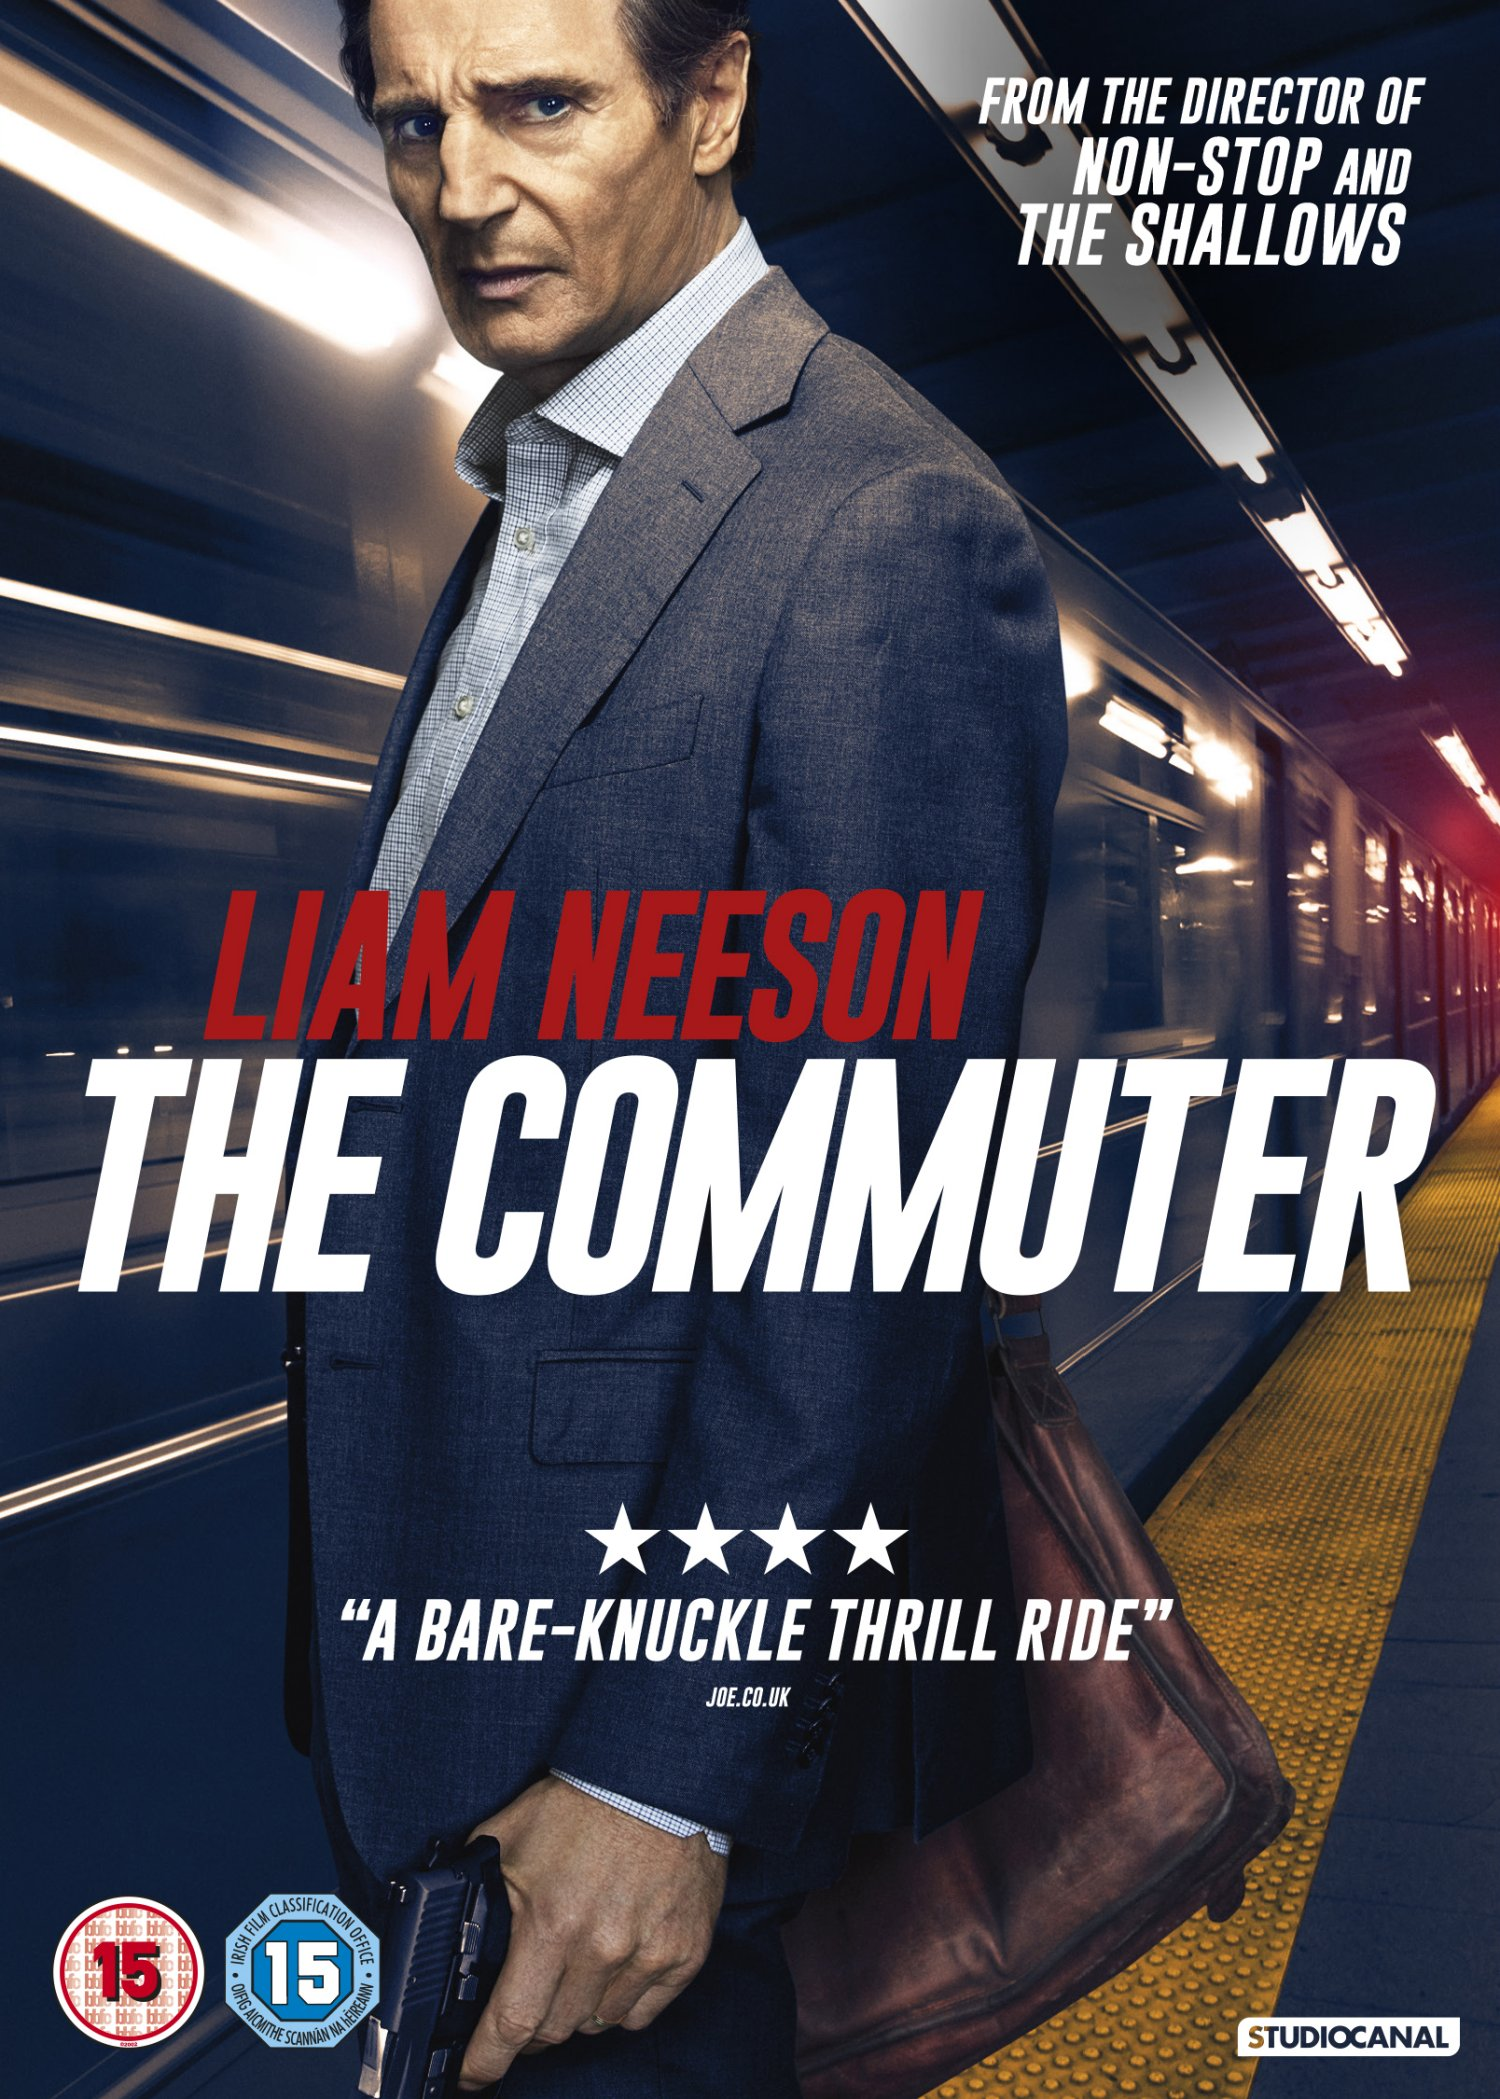 TheCommuter_DVD_2D_O-Card